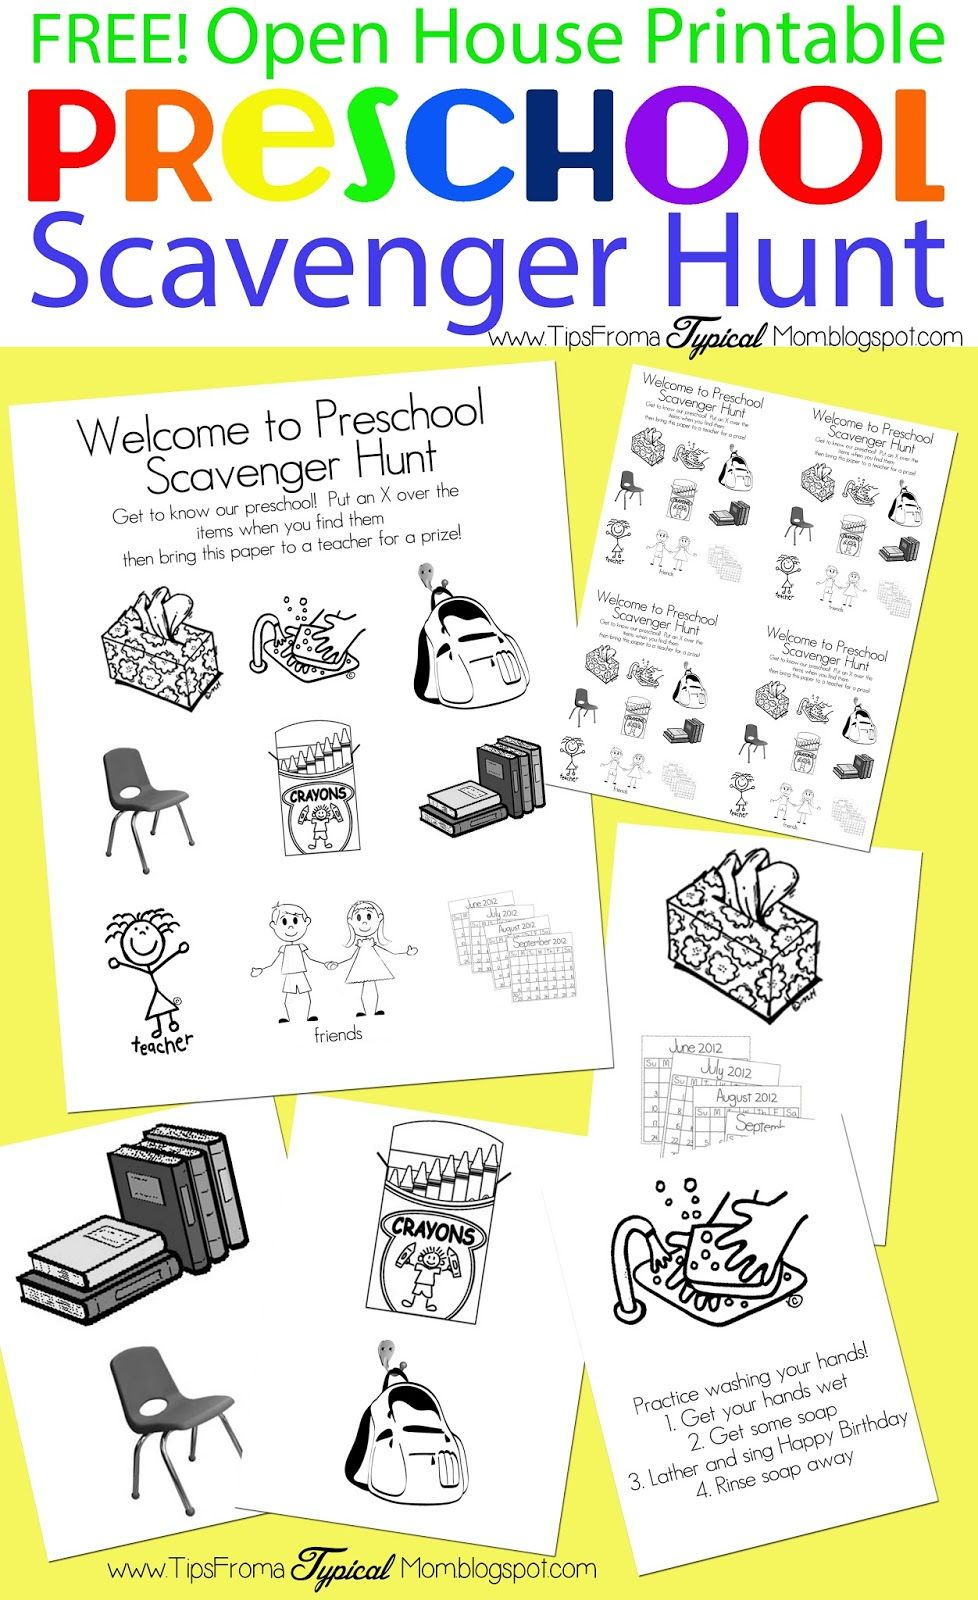 Preschool Open House Free Printable Scavenger Hunt Tips From A Typical Mom Preschool Open Houses Welcome To Preschool Welcome To School